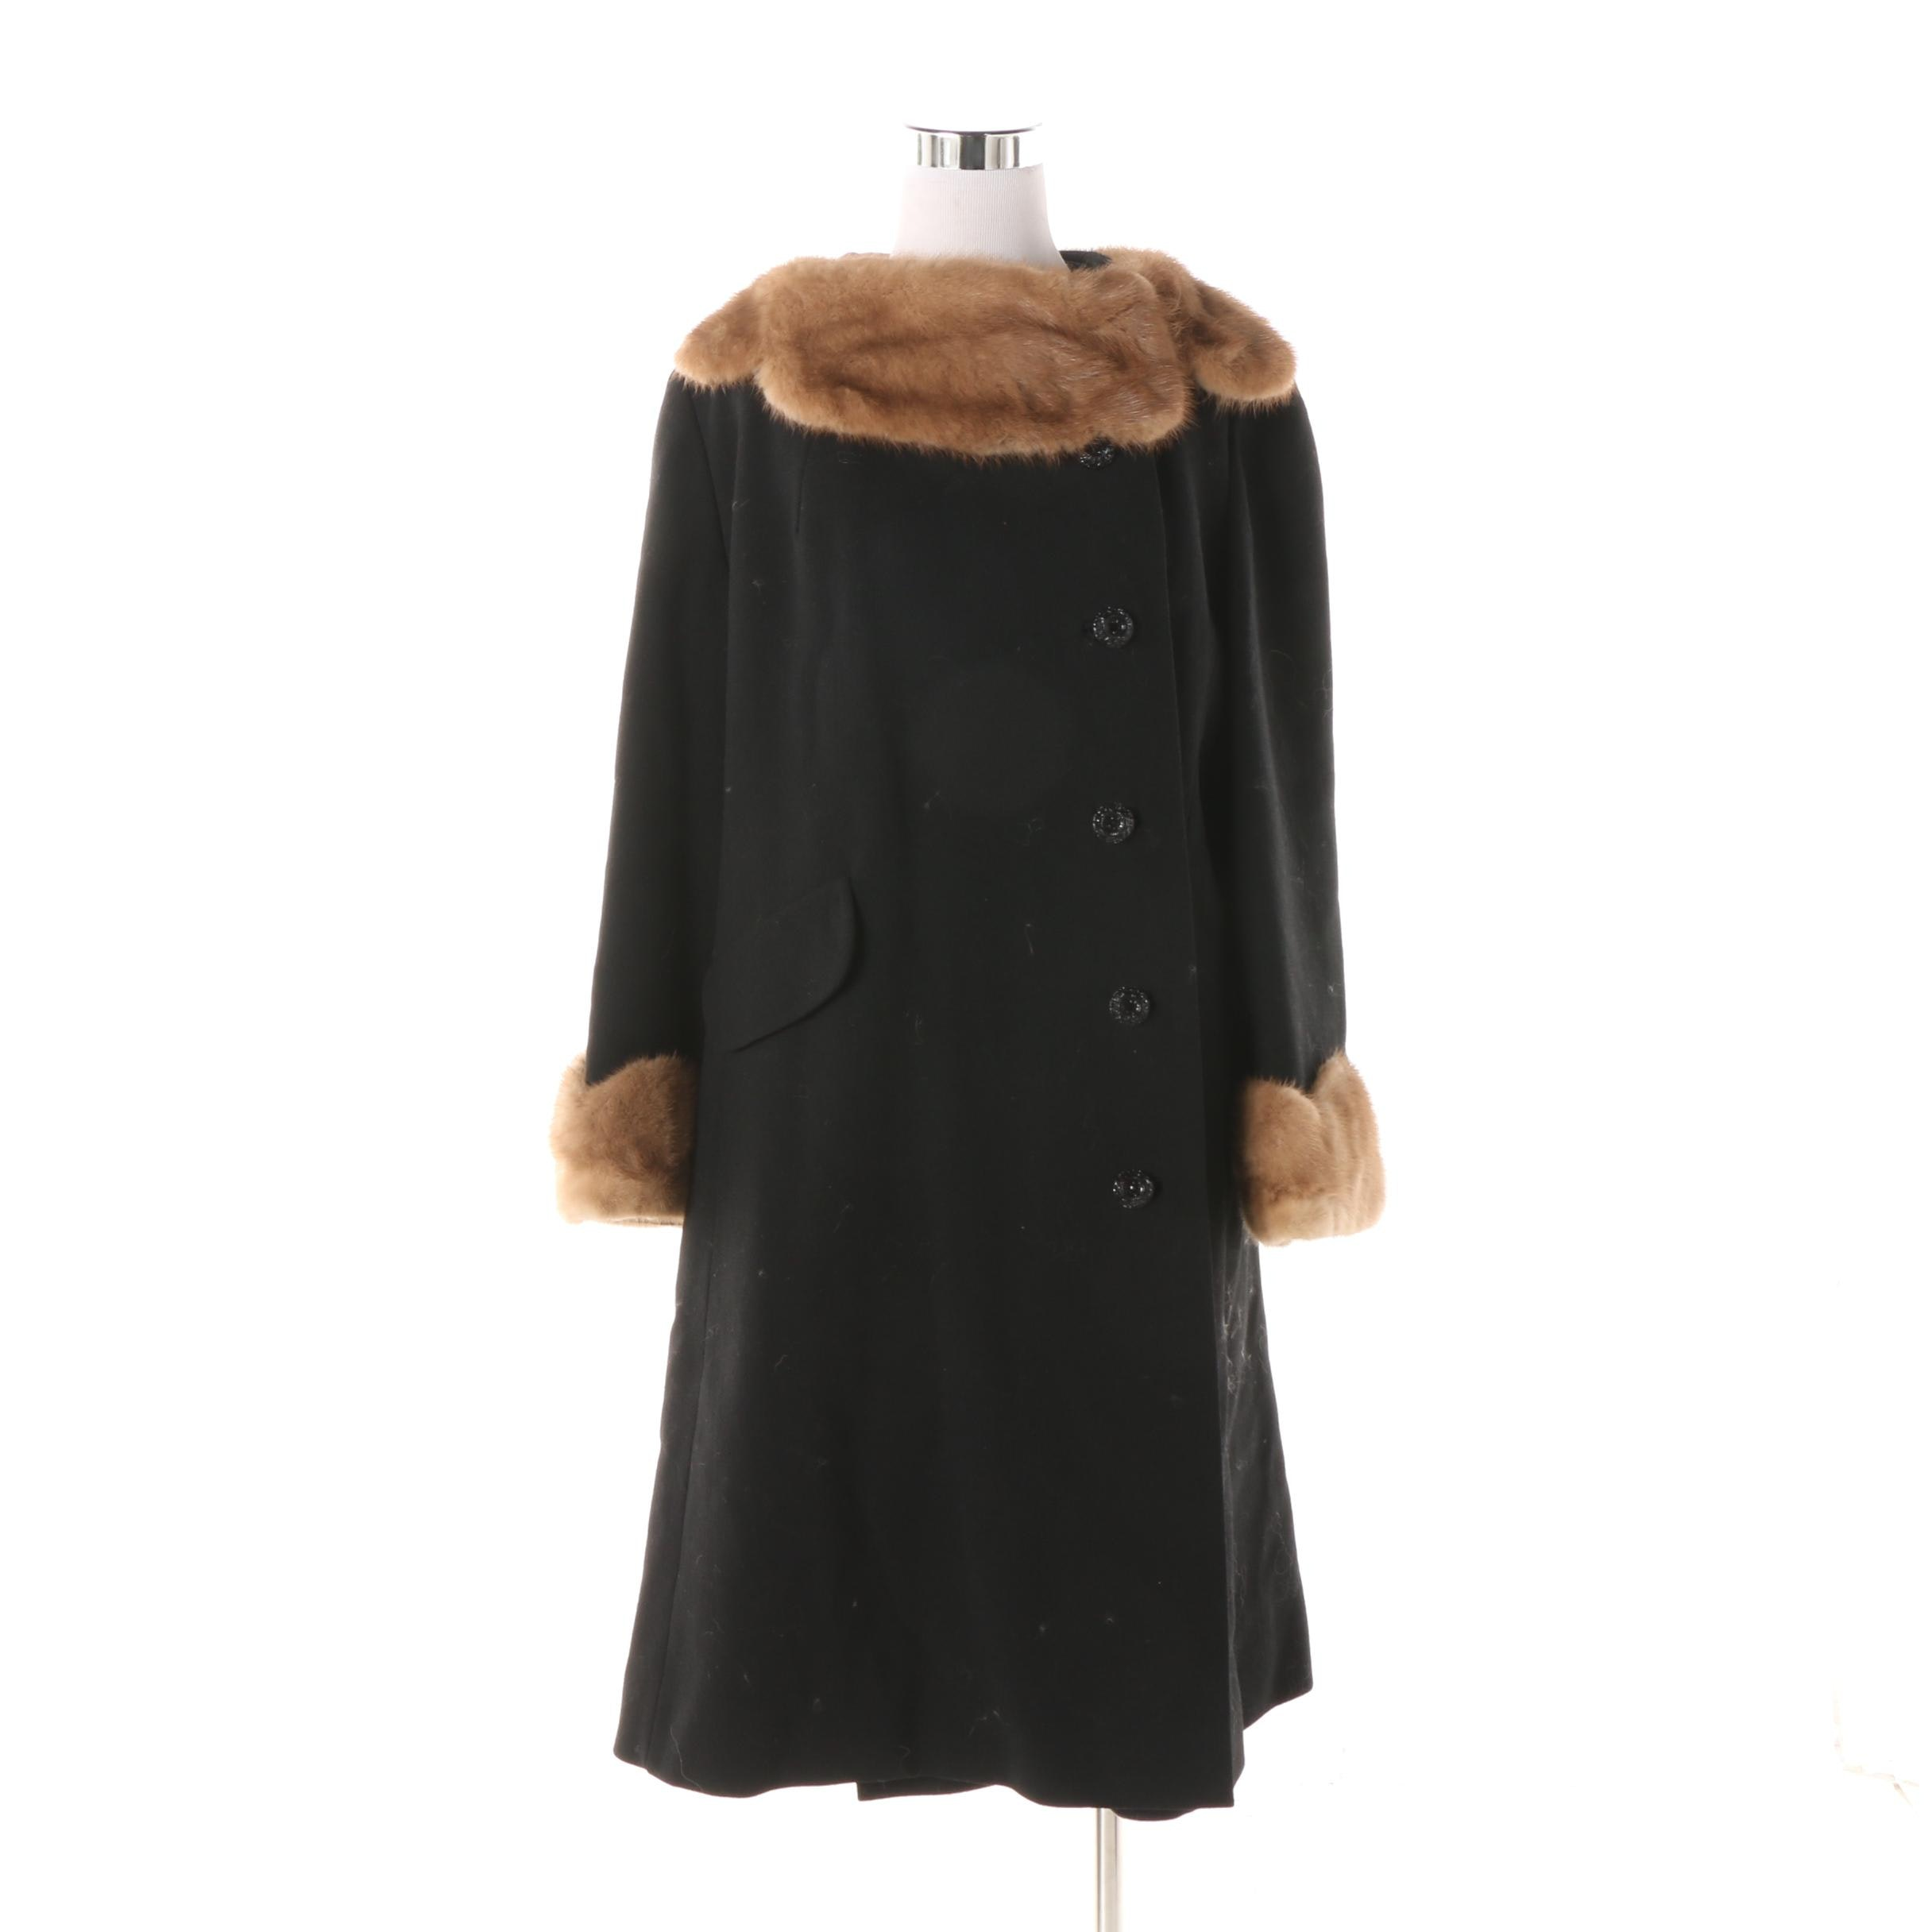 1950s Vintage Black Wool Coat with Light Brown Mink Fur Collar and Cuffs